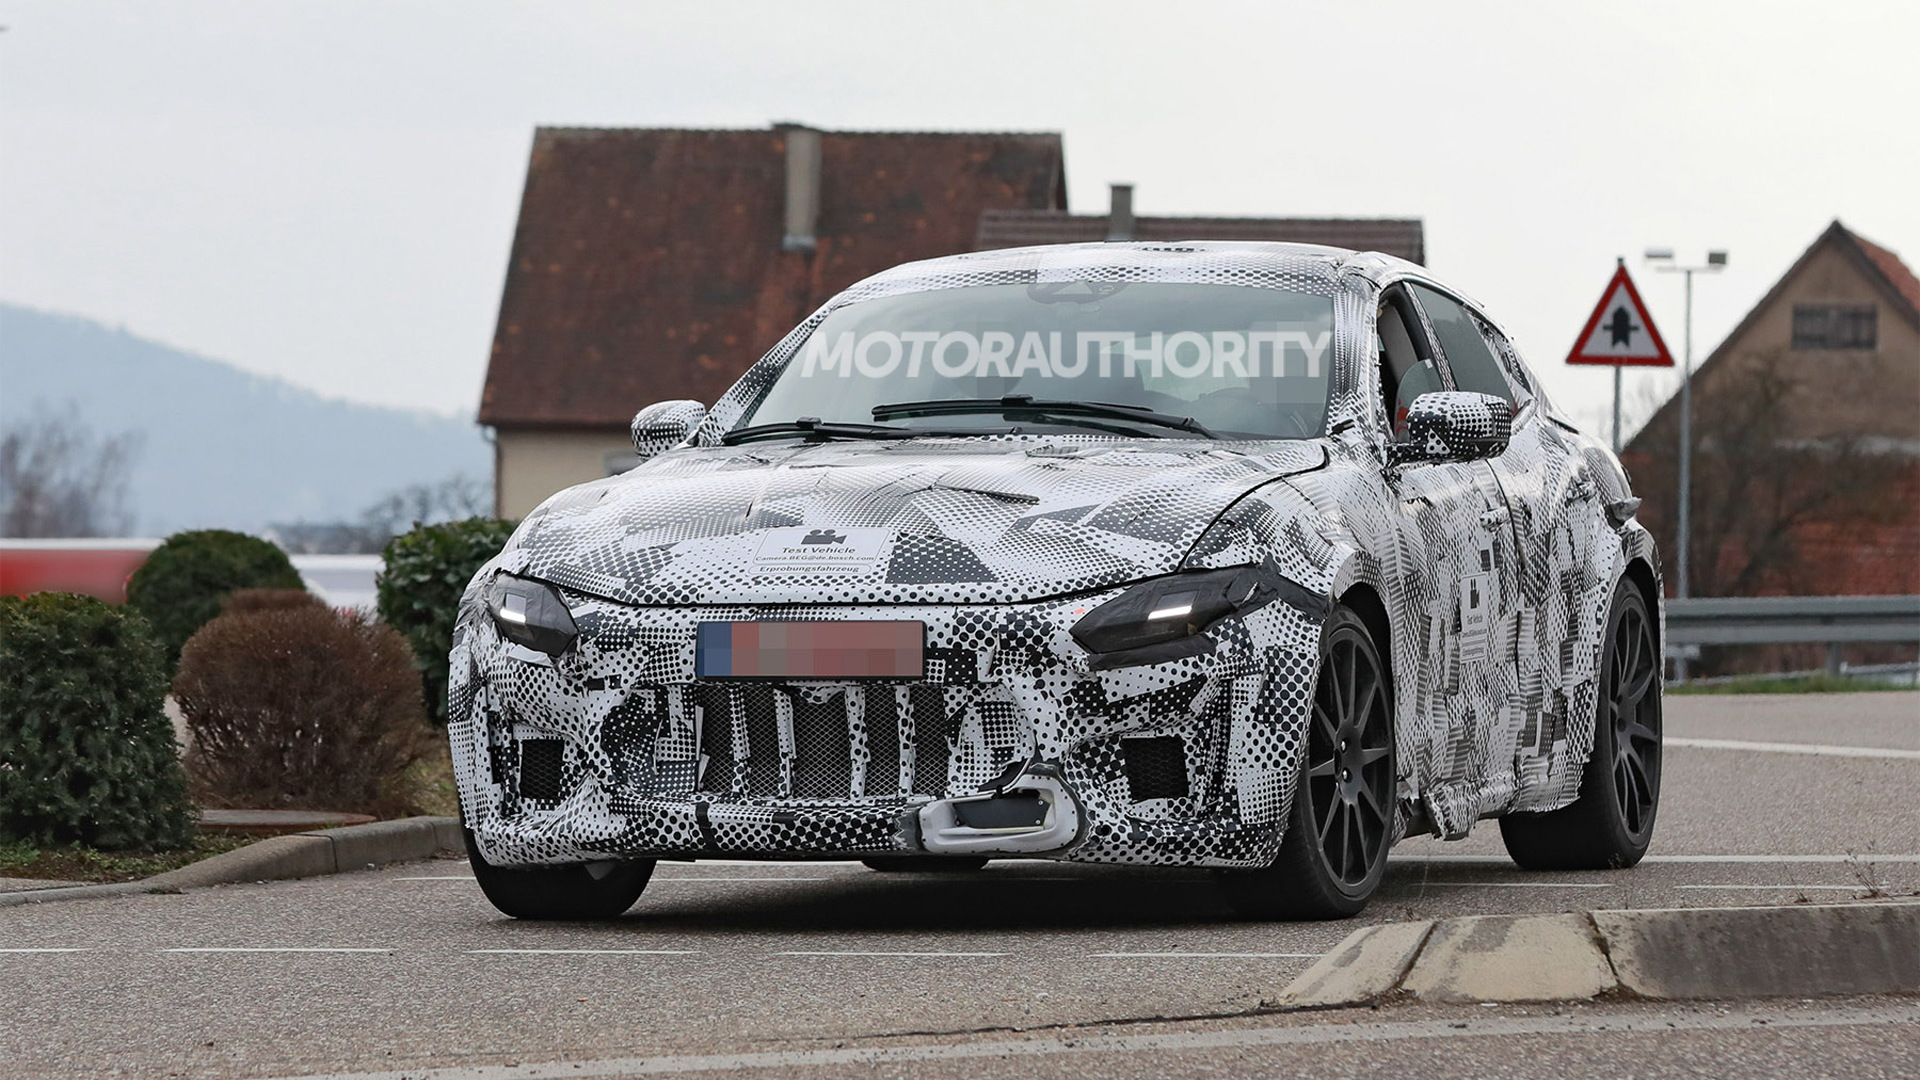 2023 Ferrari Purosangue test mule spy shots - Photo credit: S. Baldauf/SB-Medien